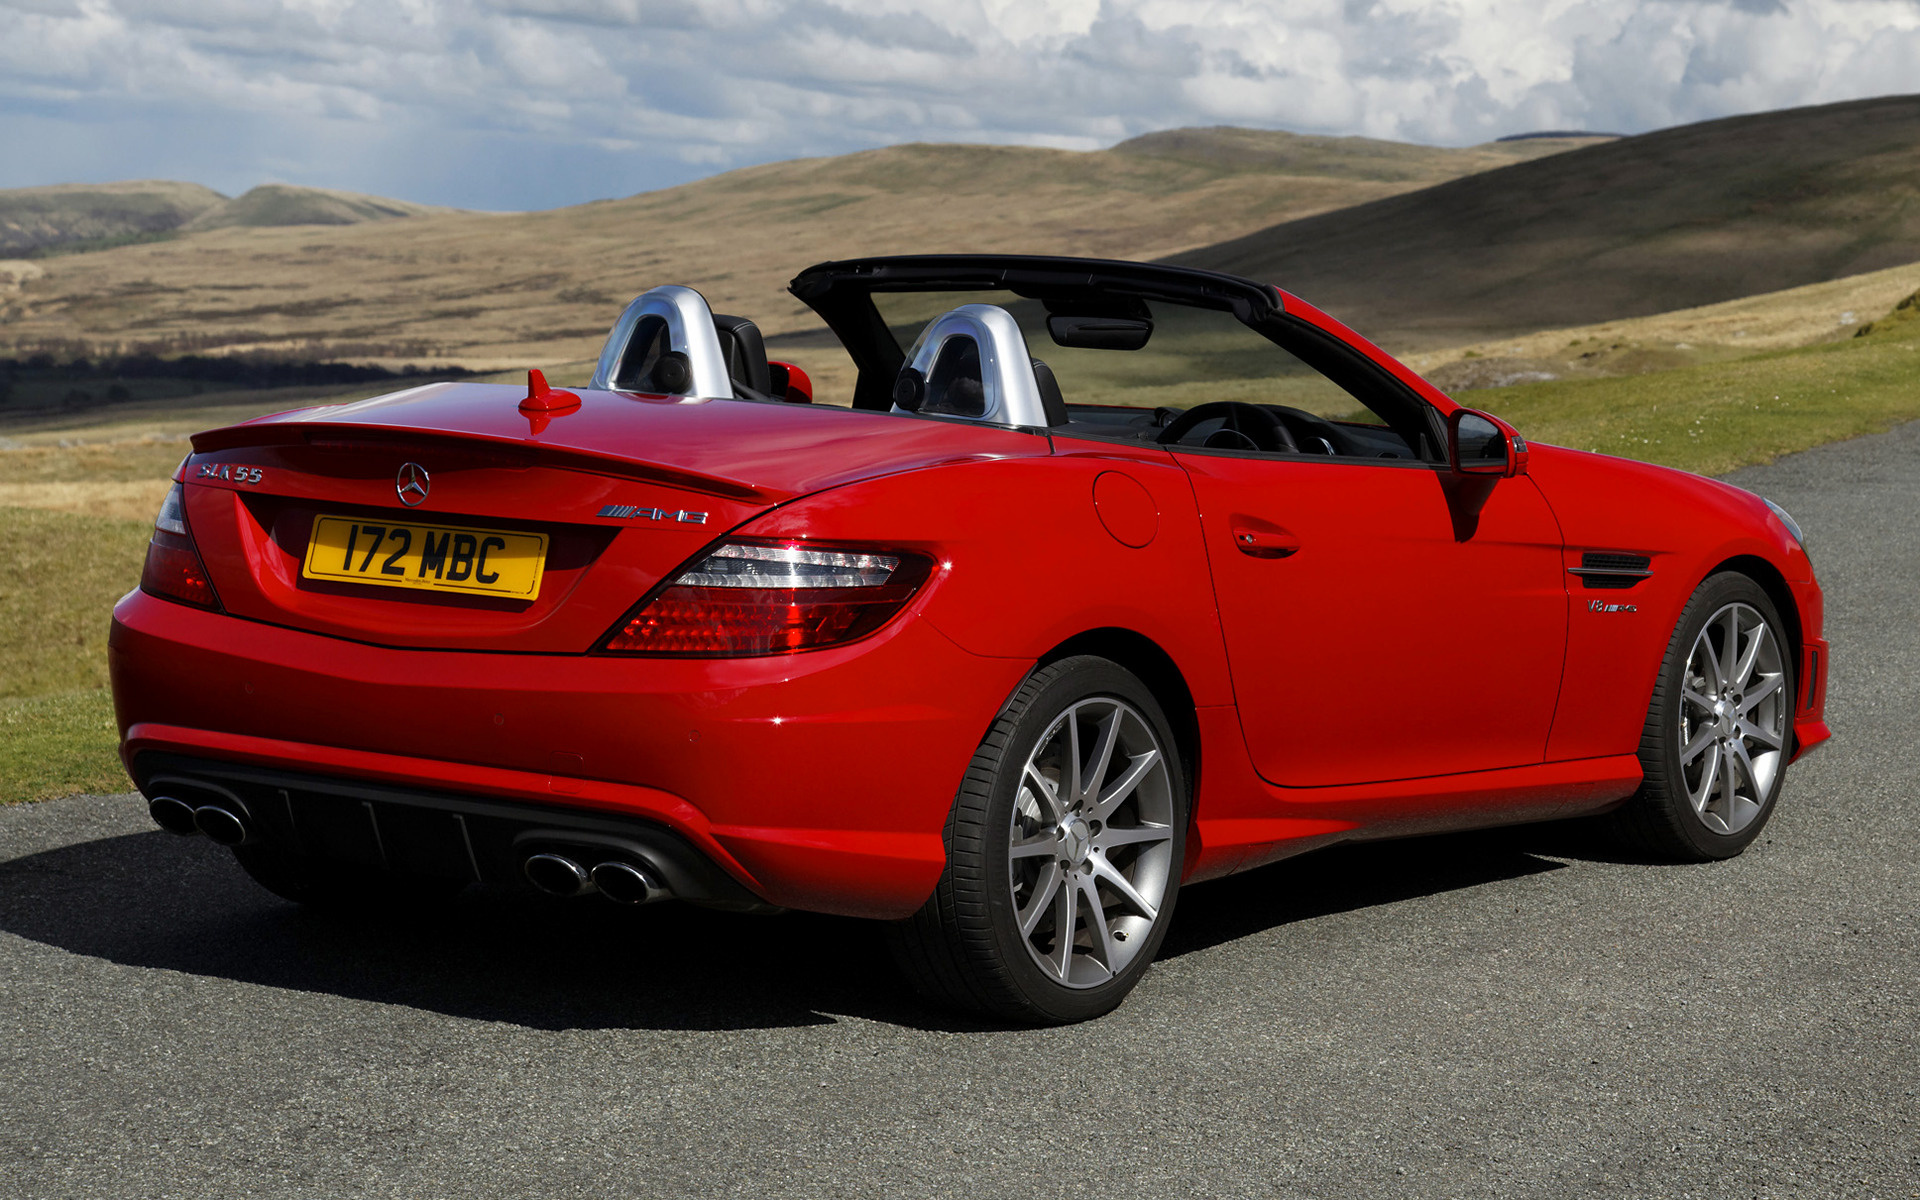 2012 mercedes benz slk 55 amg uk wallpapers and hd. Black Bedroom Furniture Sets. Home Design Ideas